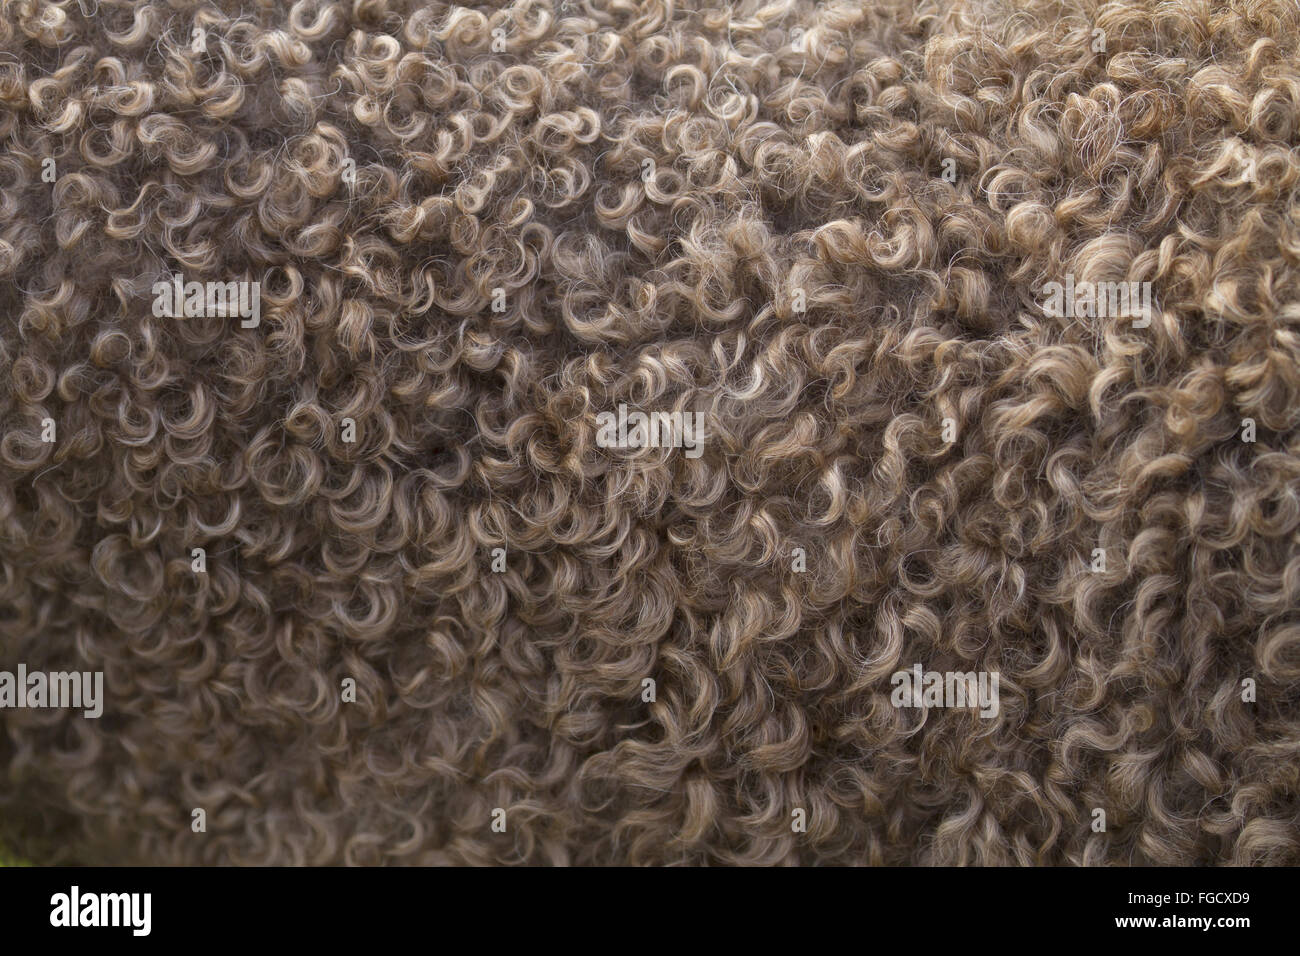 Domestic Dog, Perro de Agua Espanol, adult, close-up of curly coat, Norfolk, England, October - Stock Image